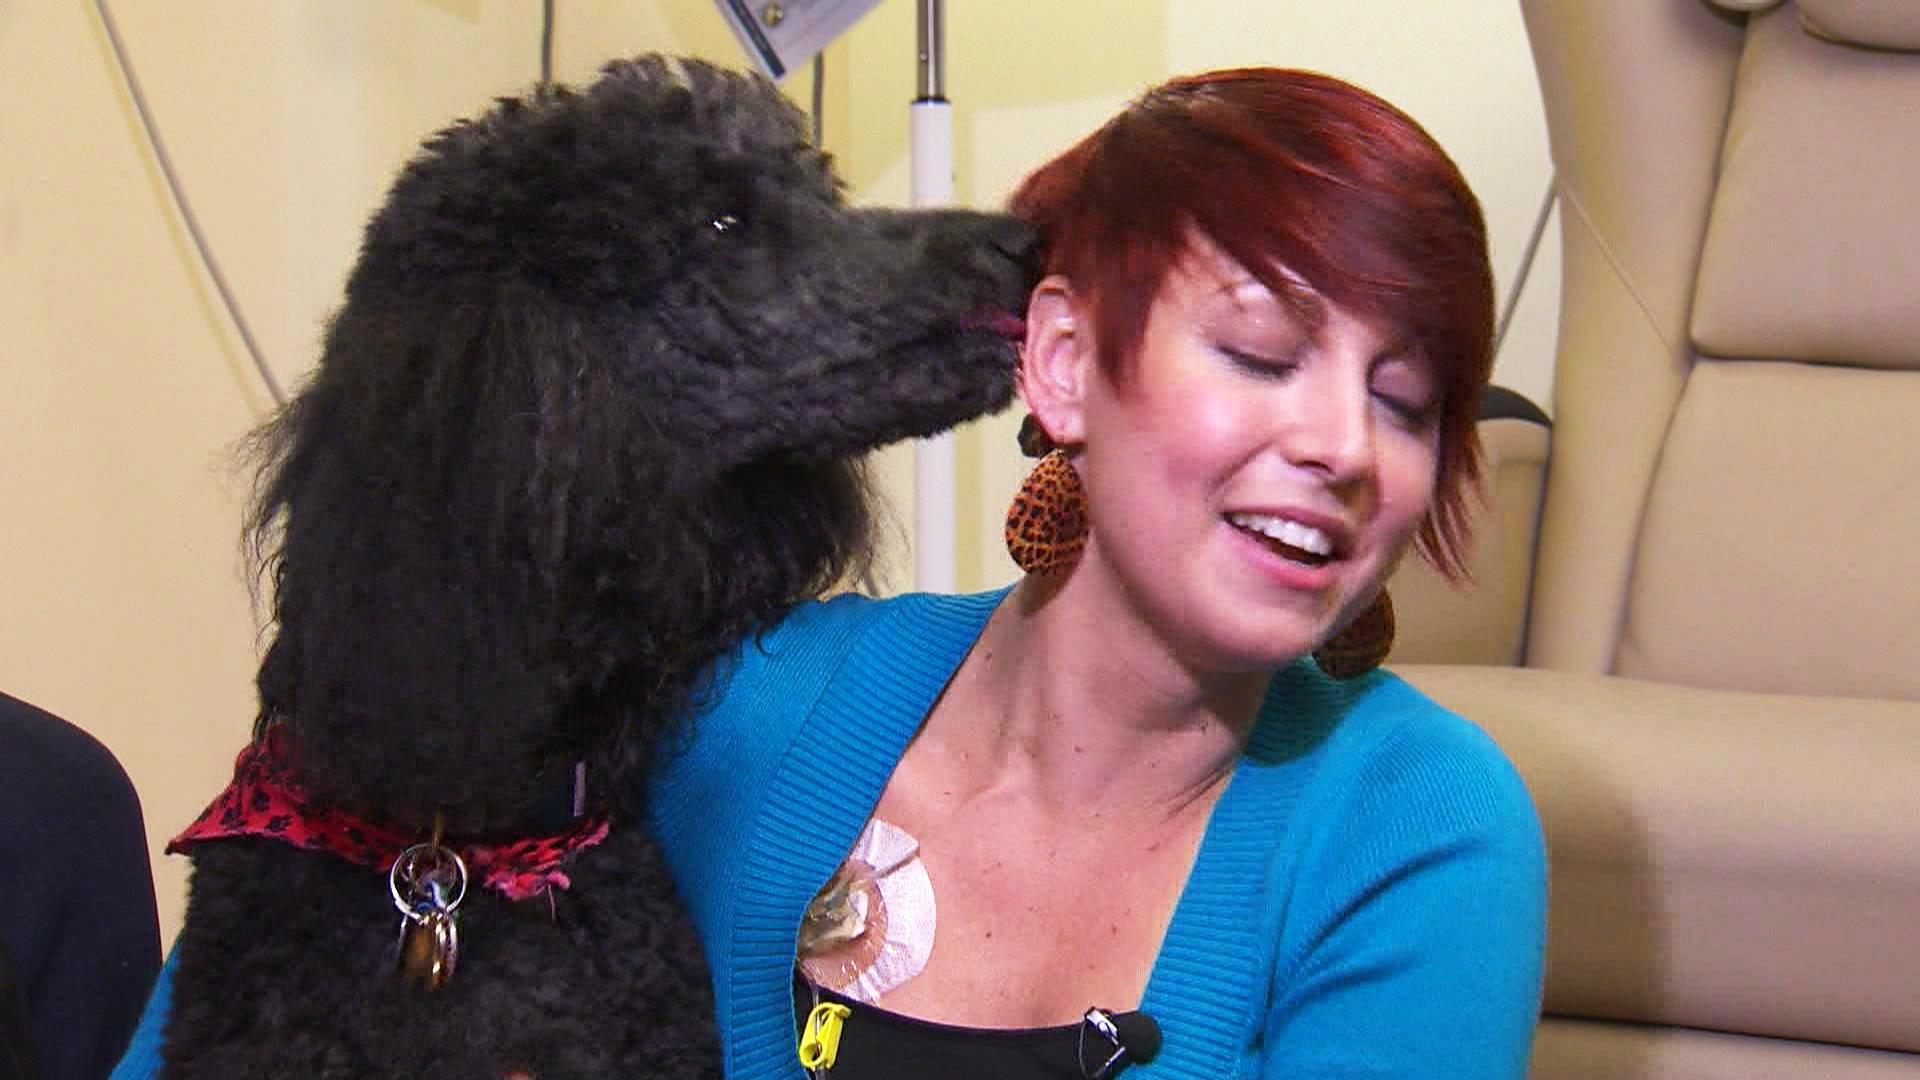 Therapy dogs help cancer patients heal